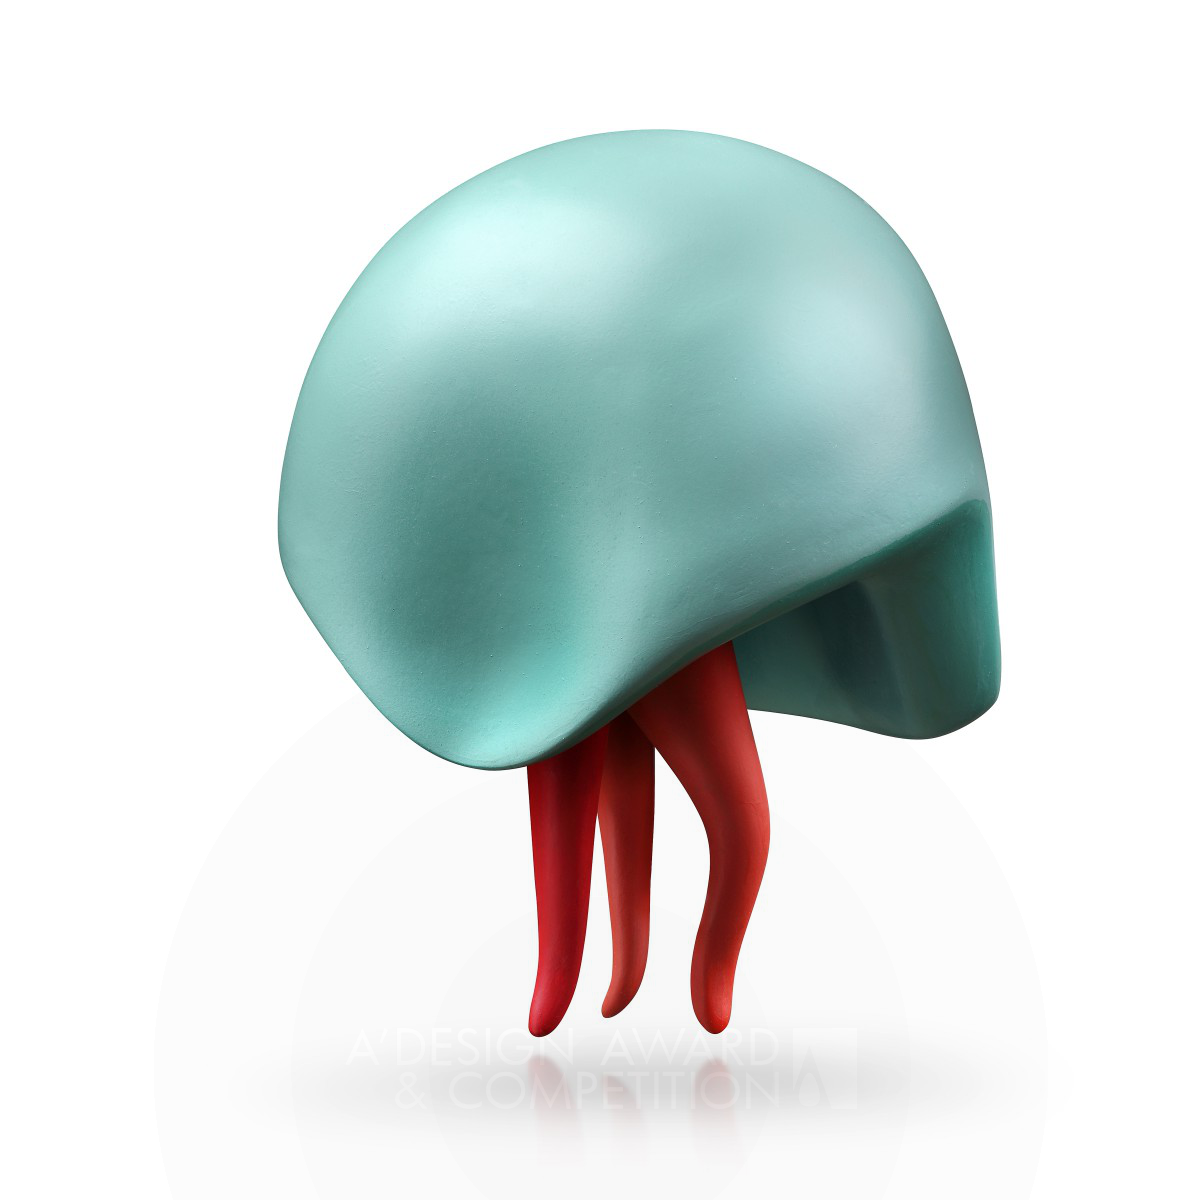 Jellyfish Investment Firm Corporate Identity